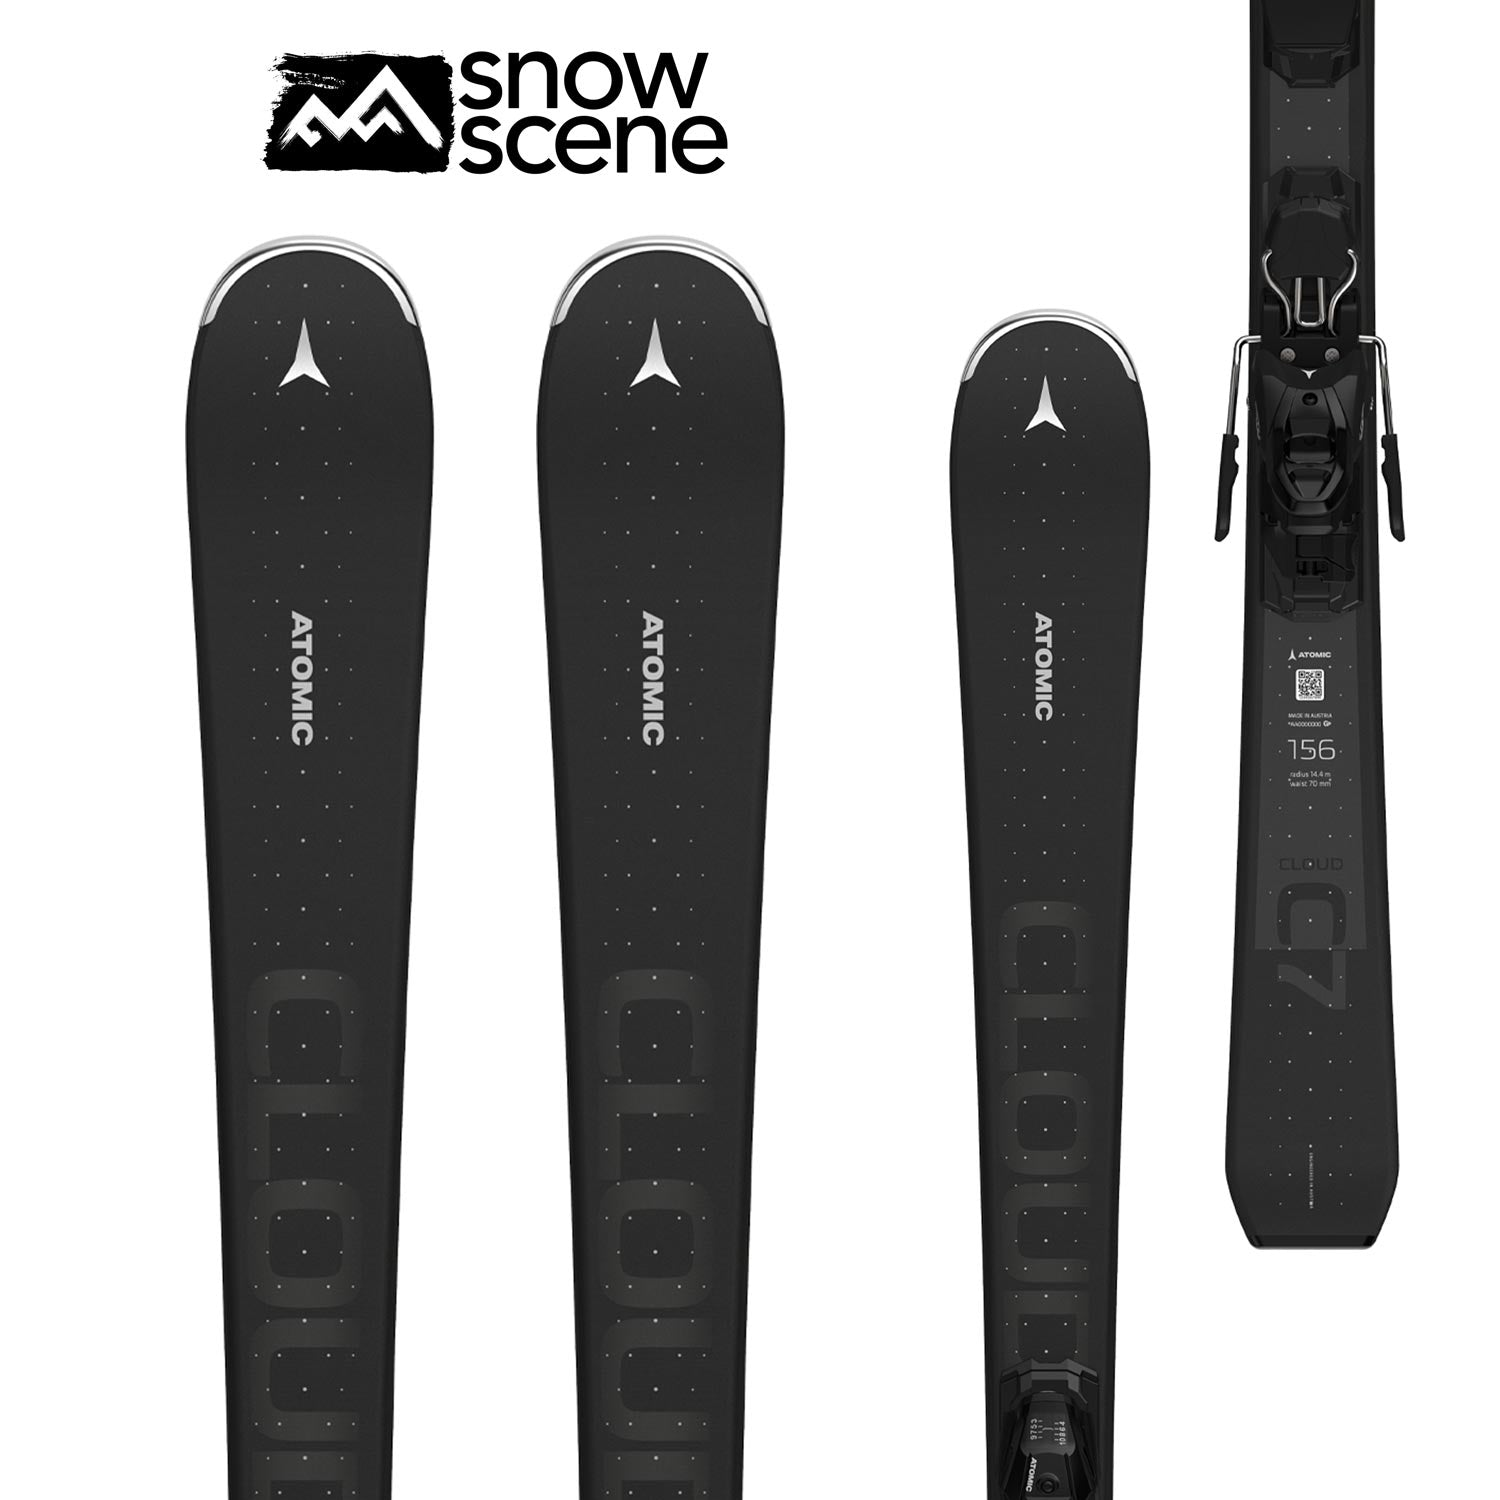 2020 Atomic Cloud 7 W- Shop Skis and snow gear online nz - snowscene